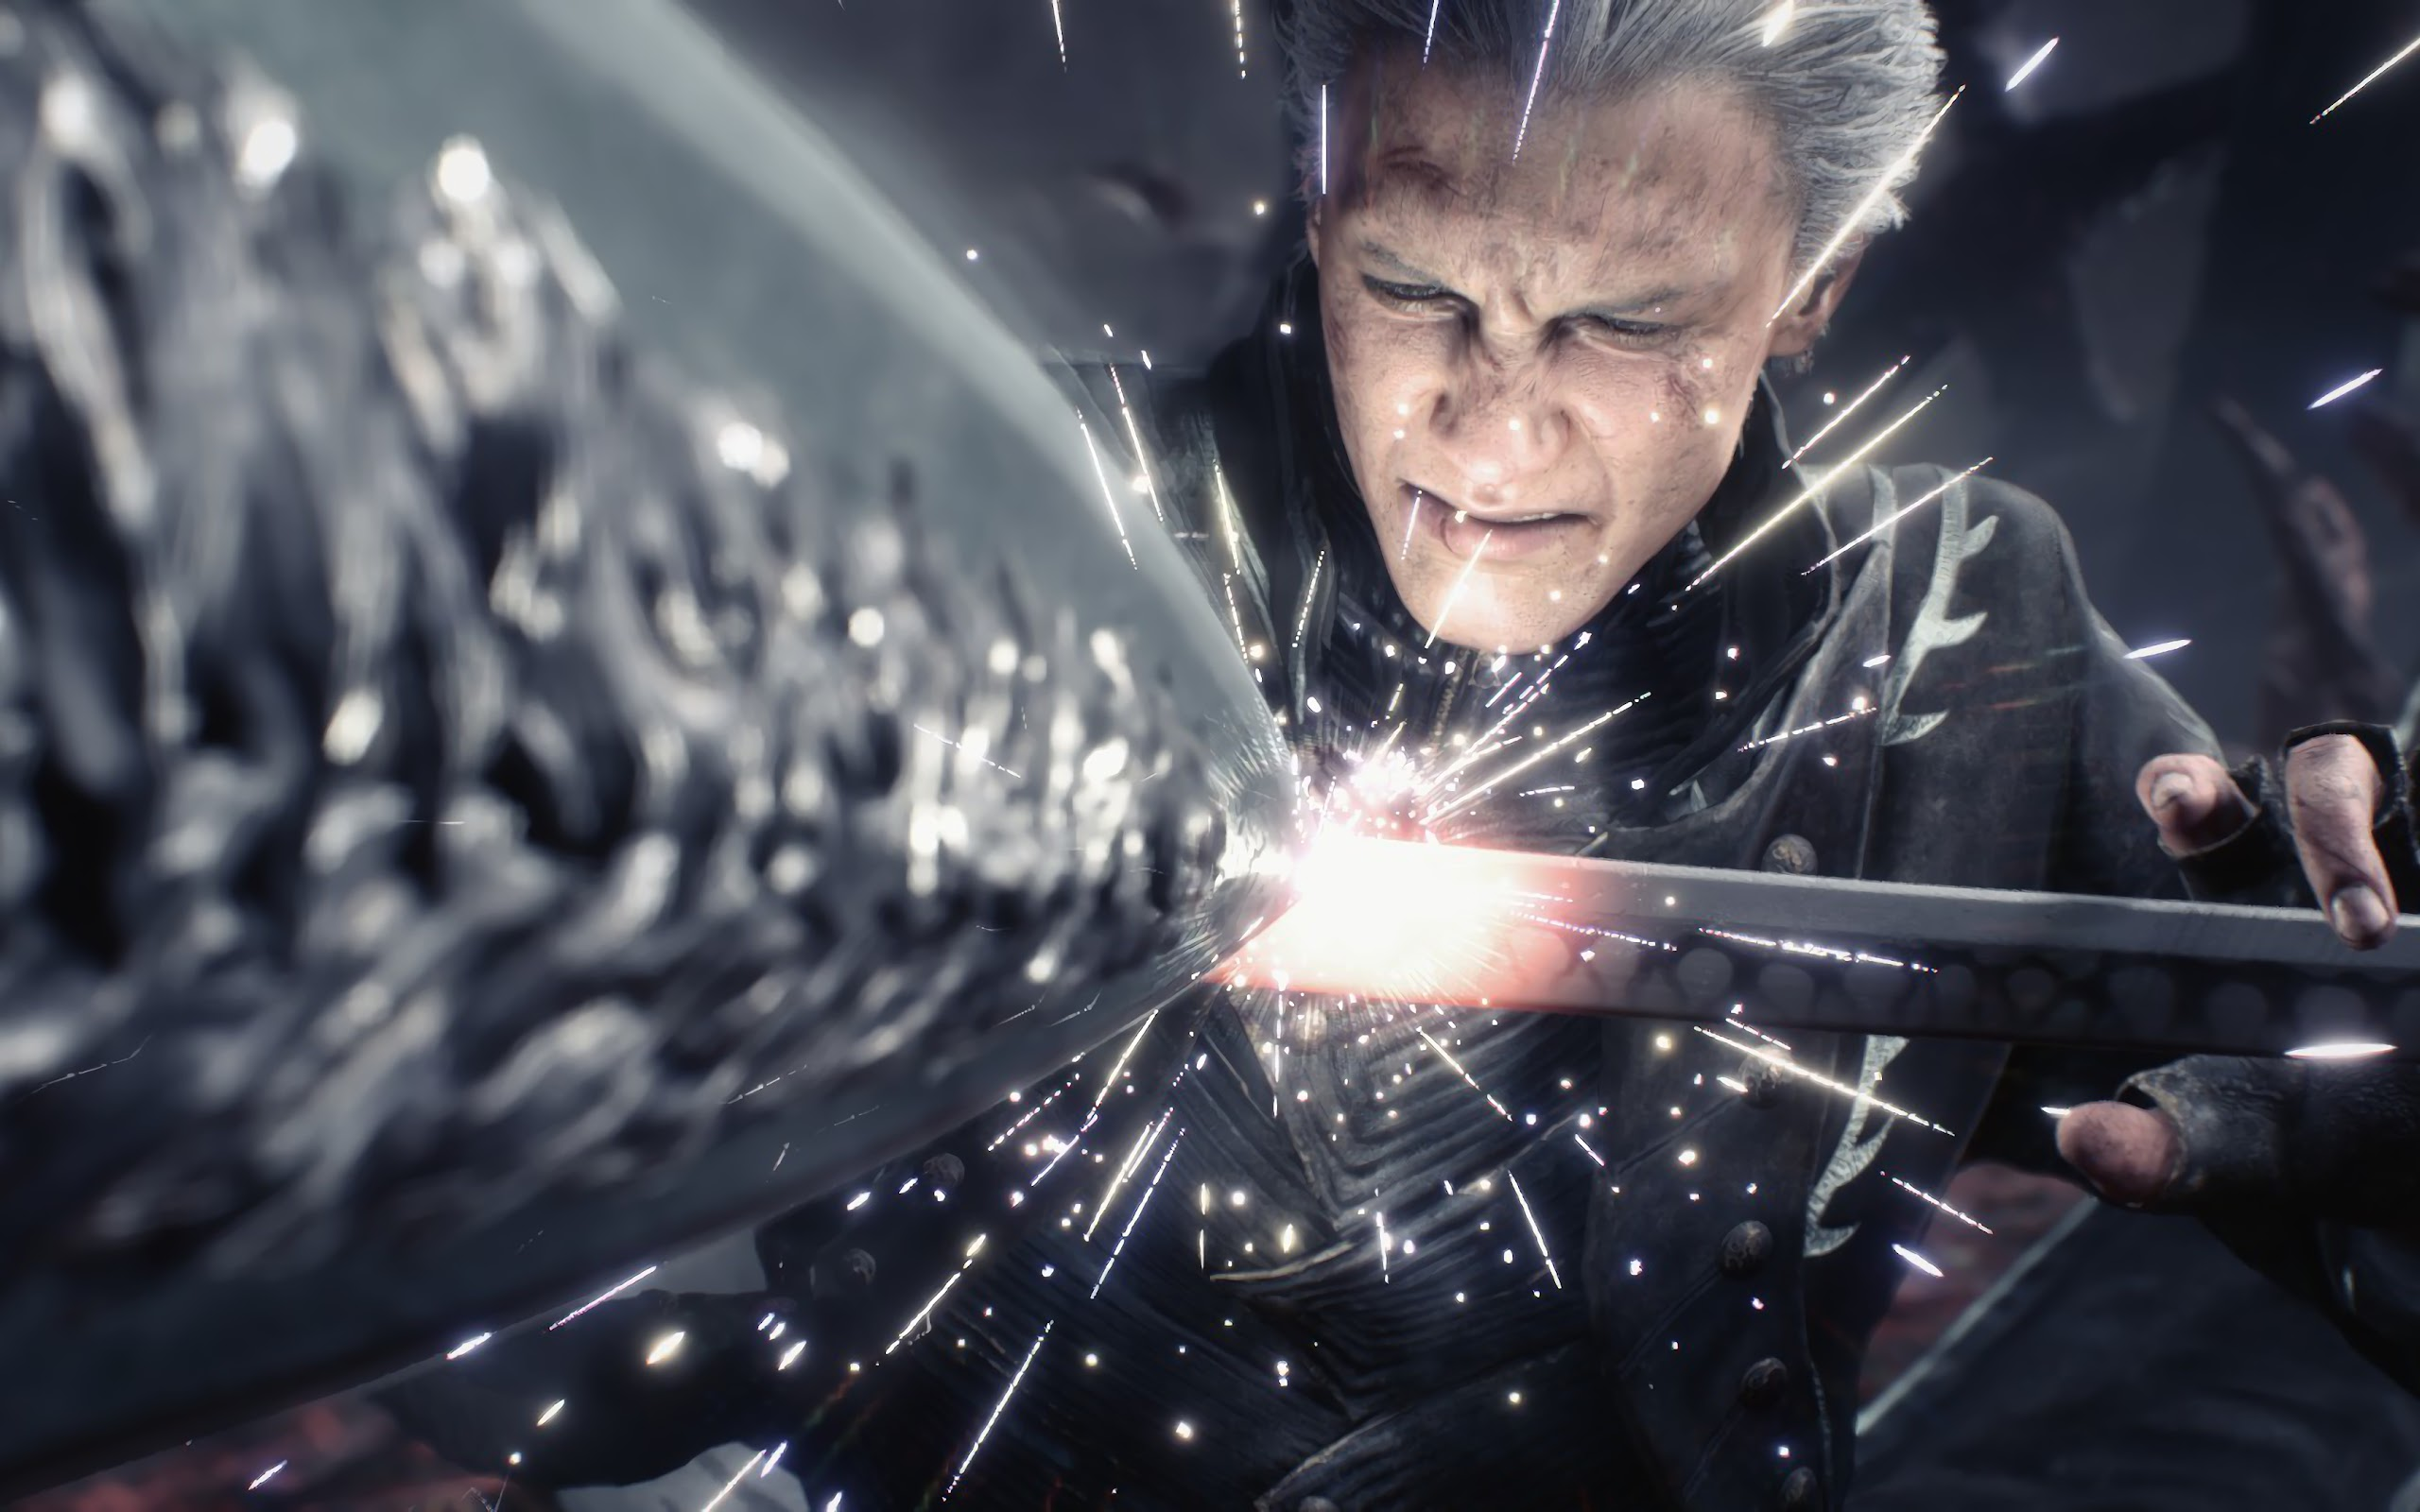 Devil May Cry 5 Vergil 4k Wallpaper 98